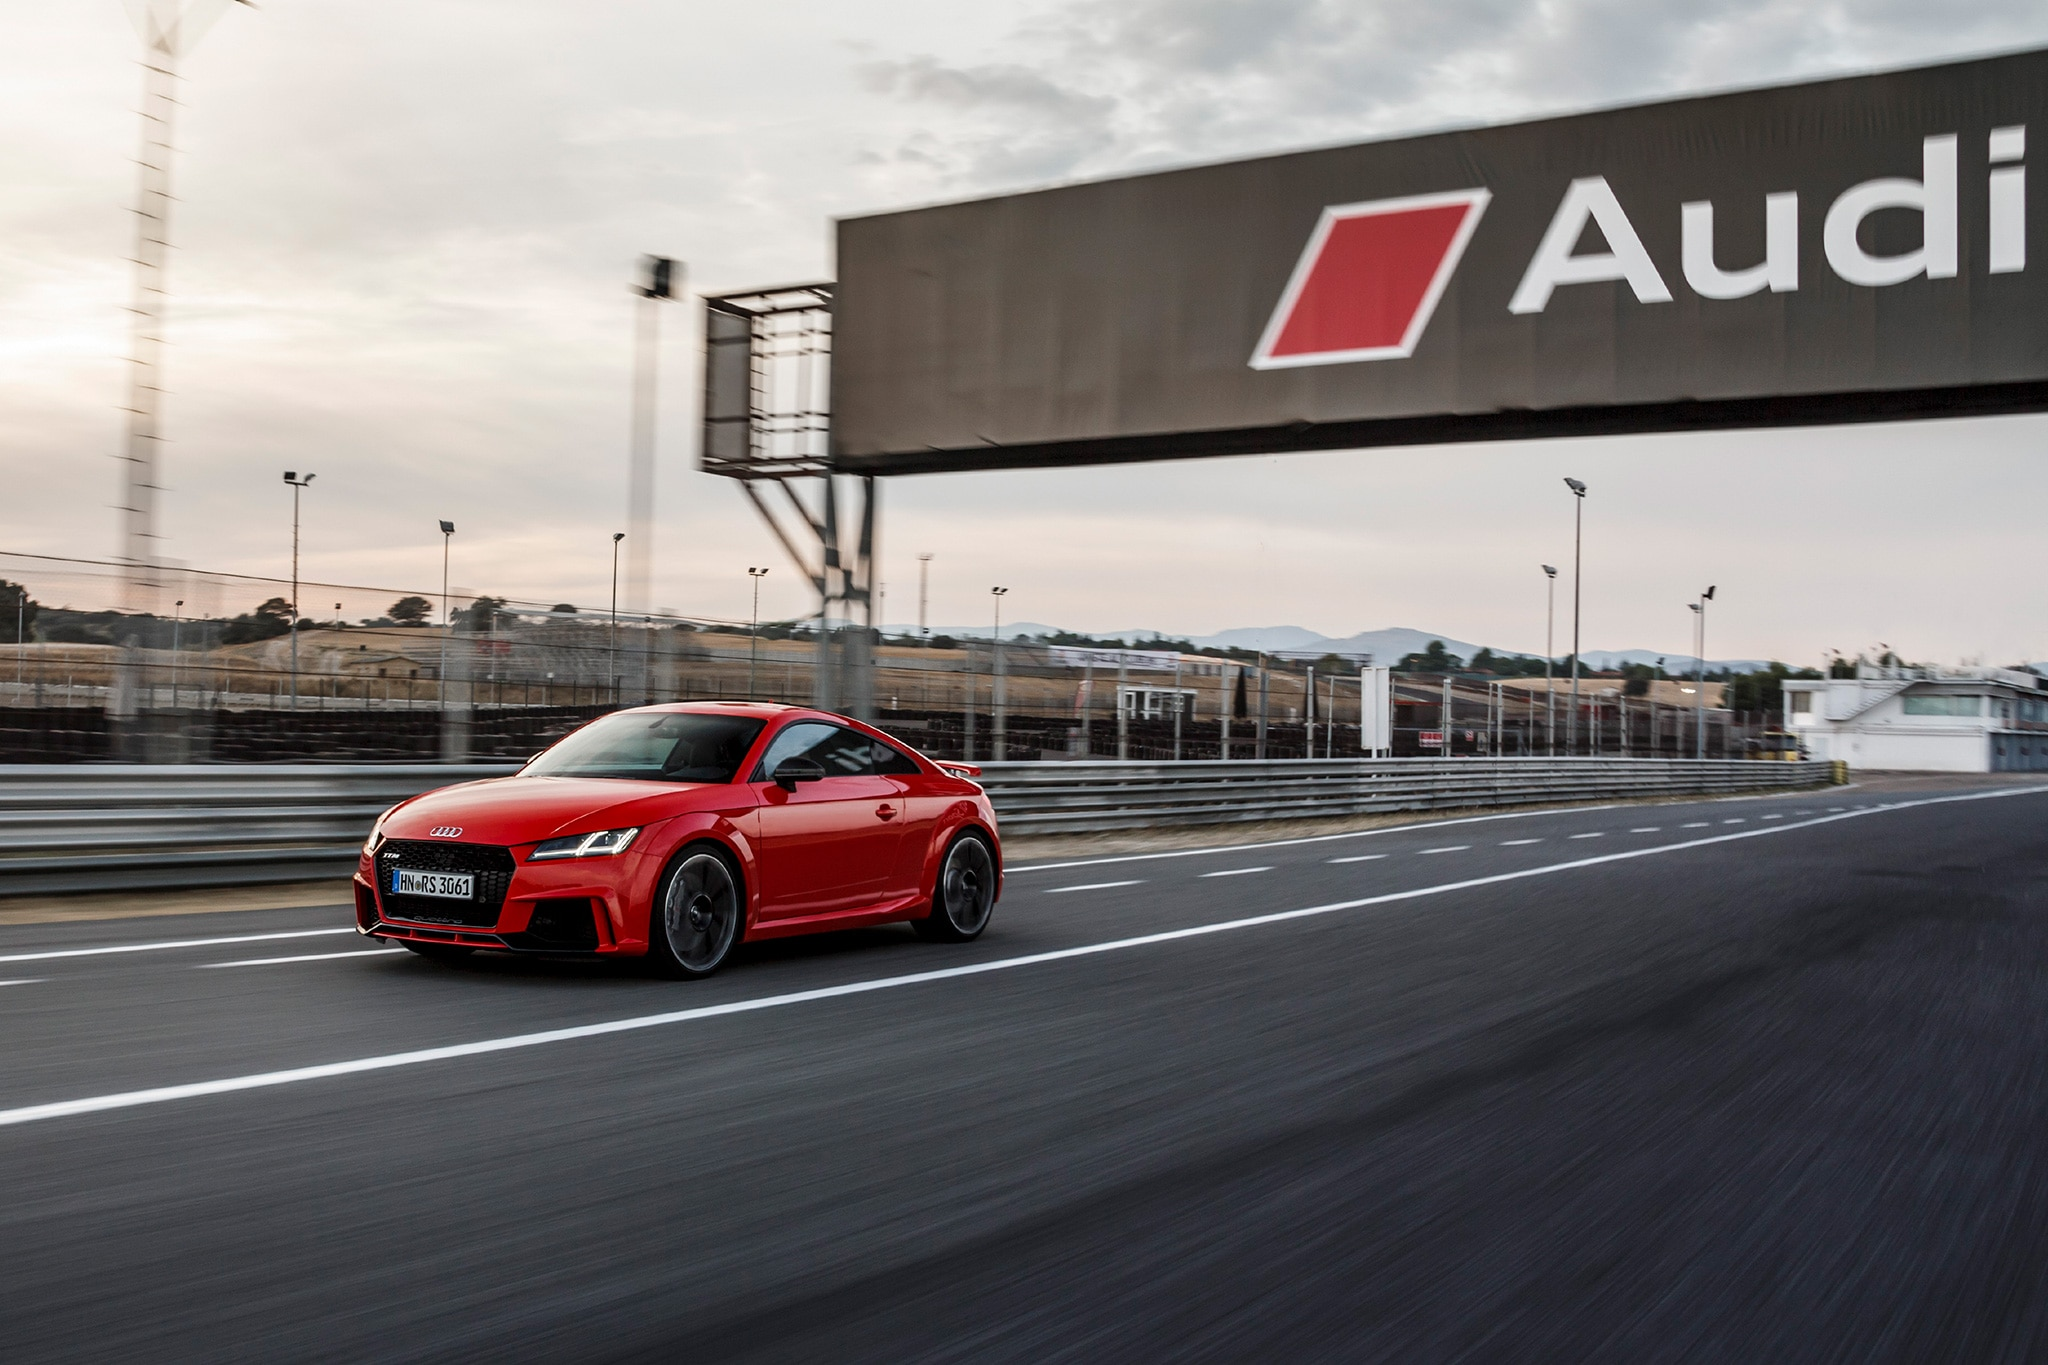 2018 Audi TT RS Coupe Front Three Quarter In Motion 13